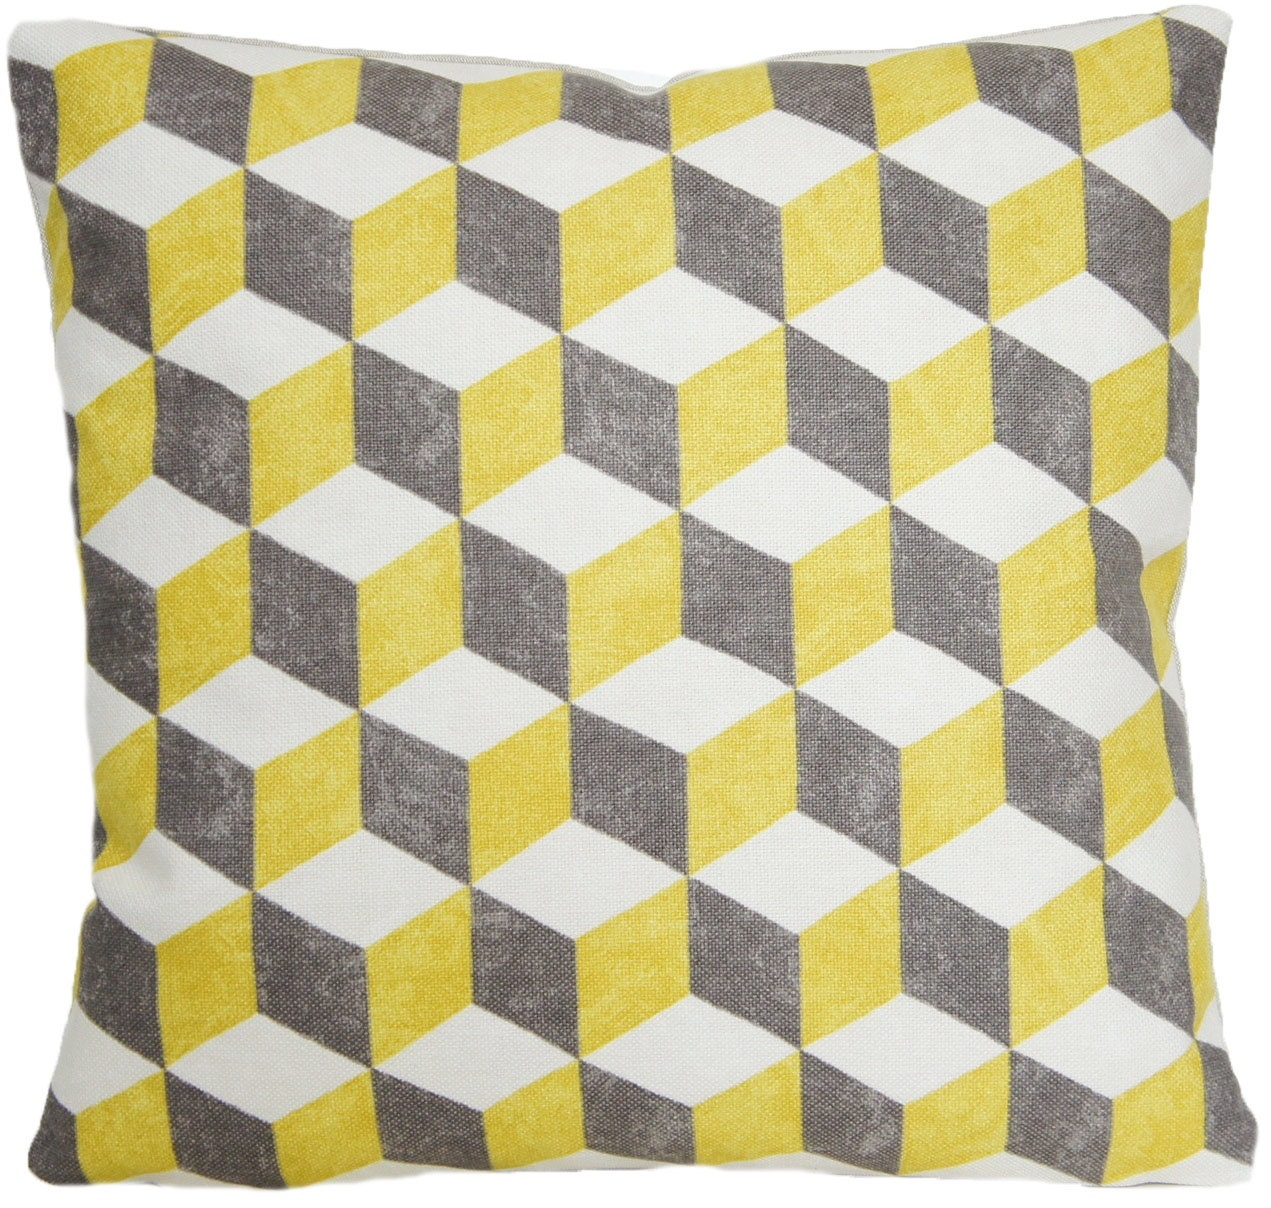 Fabric For Throw Pillow Covers : Yellow Cushion Cover Pillow Throw Case Fabric Osborne & Little